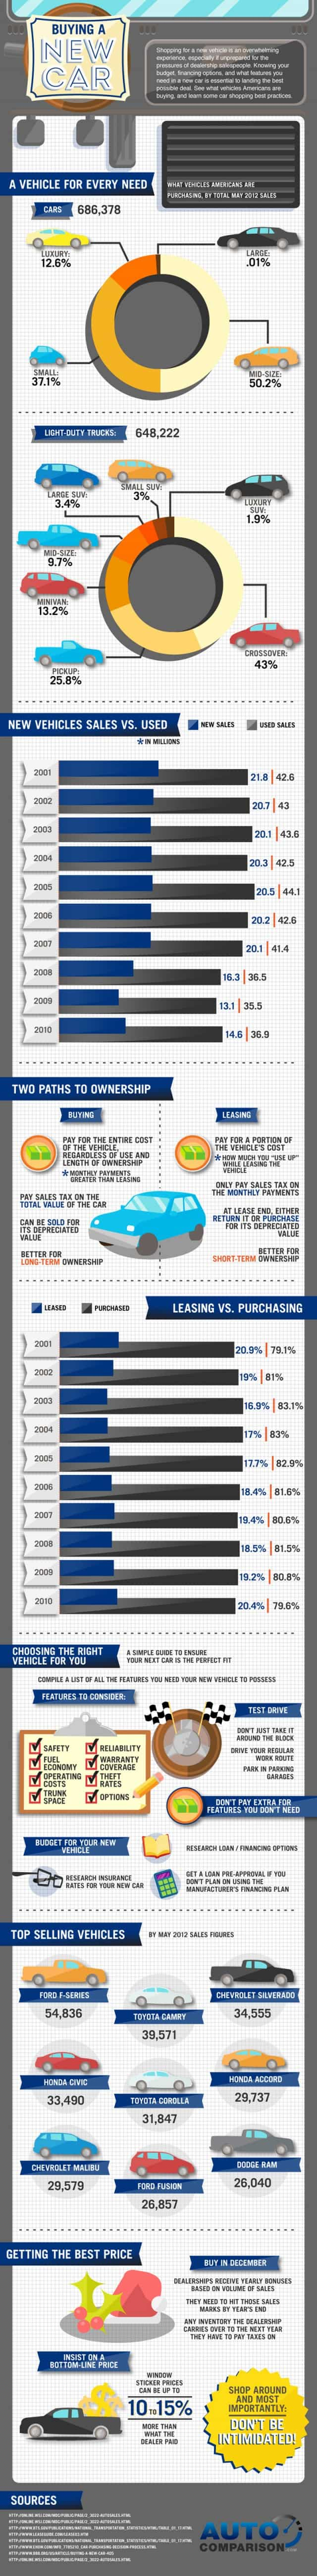 Buying a New Car [infographic]